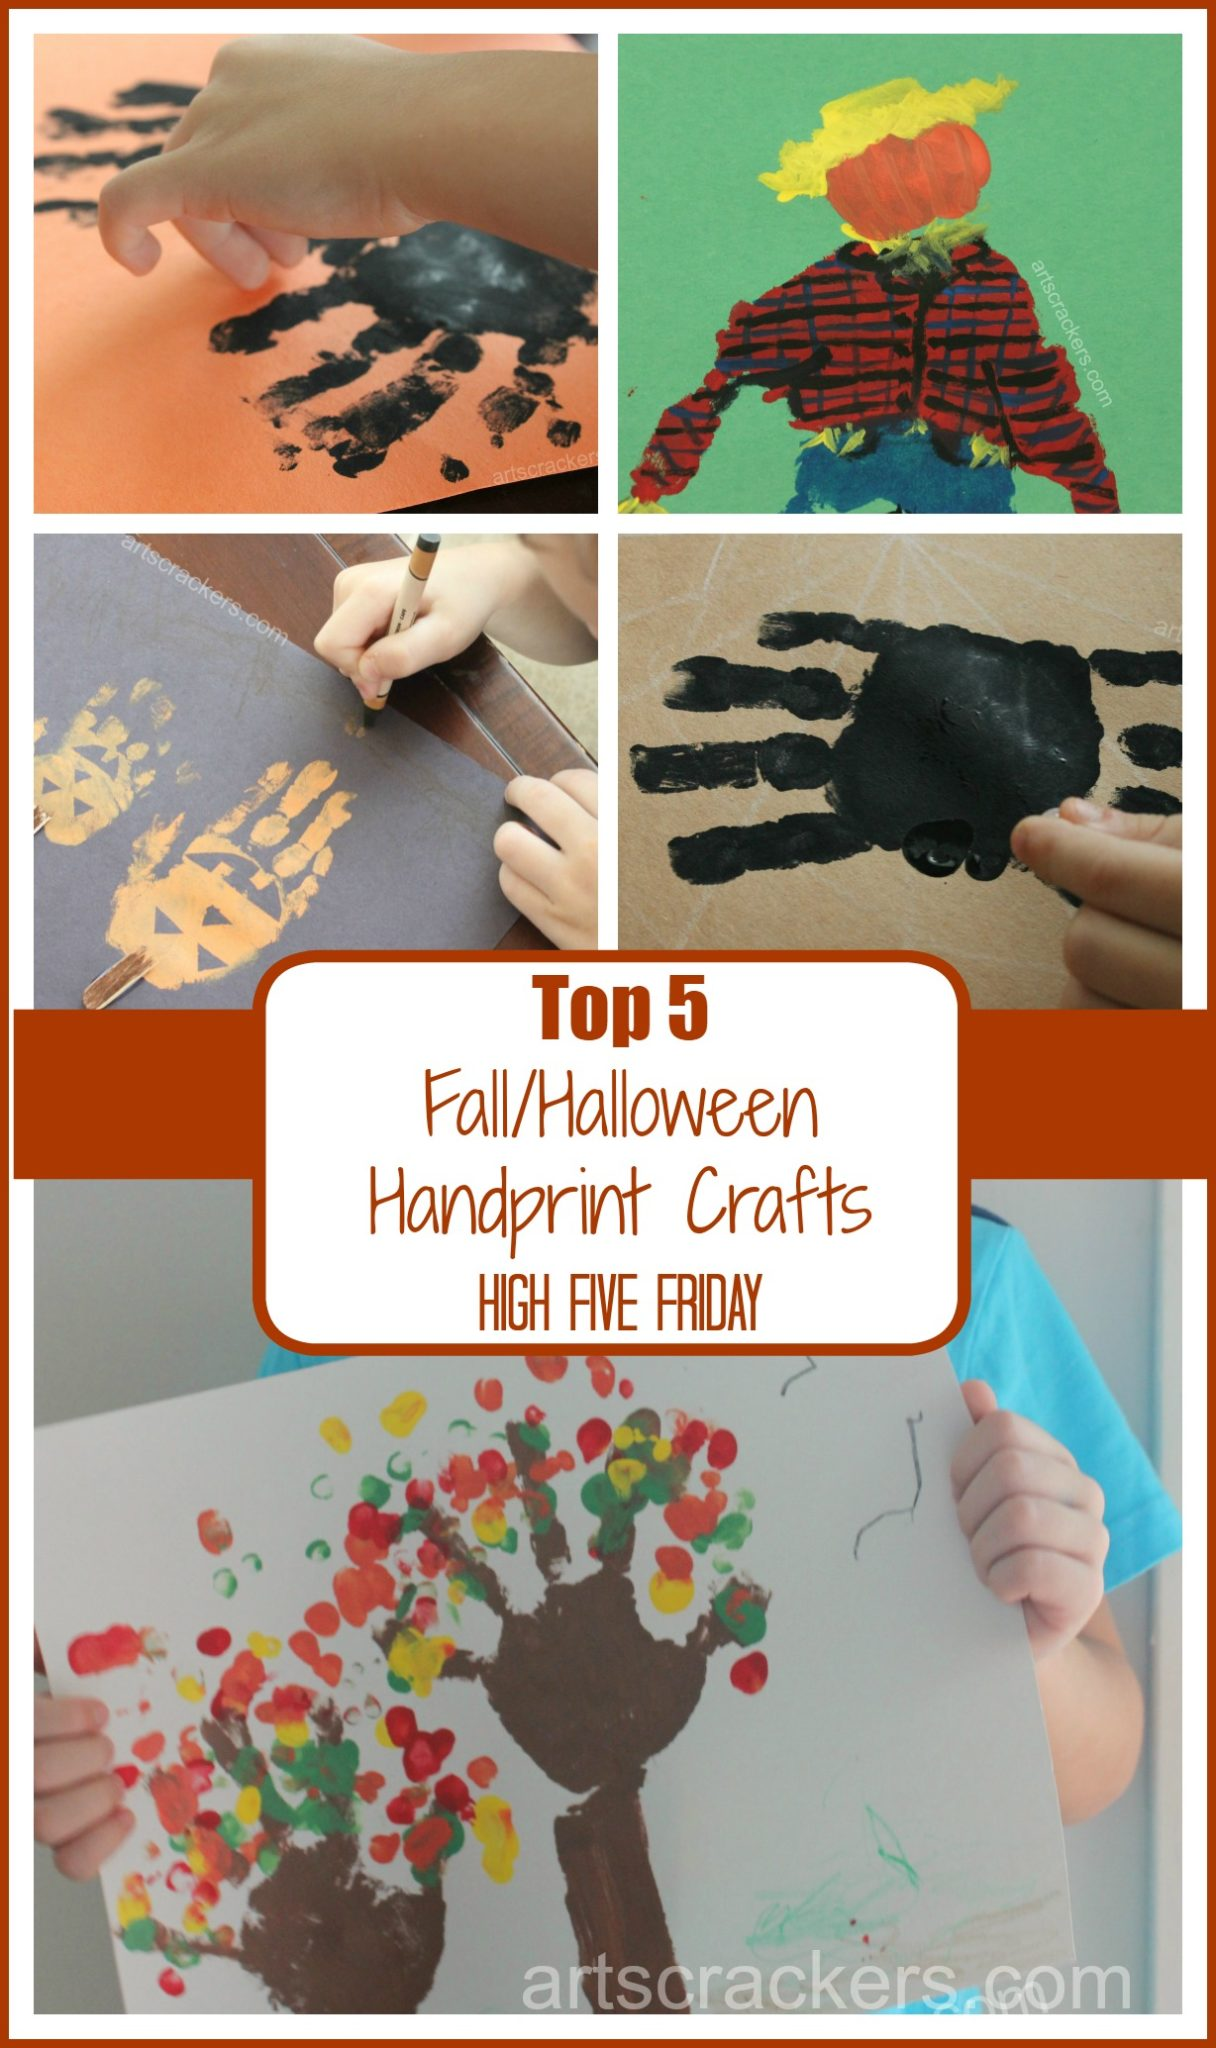 Top 5 Fall Halloween Handprint Crafts